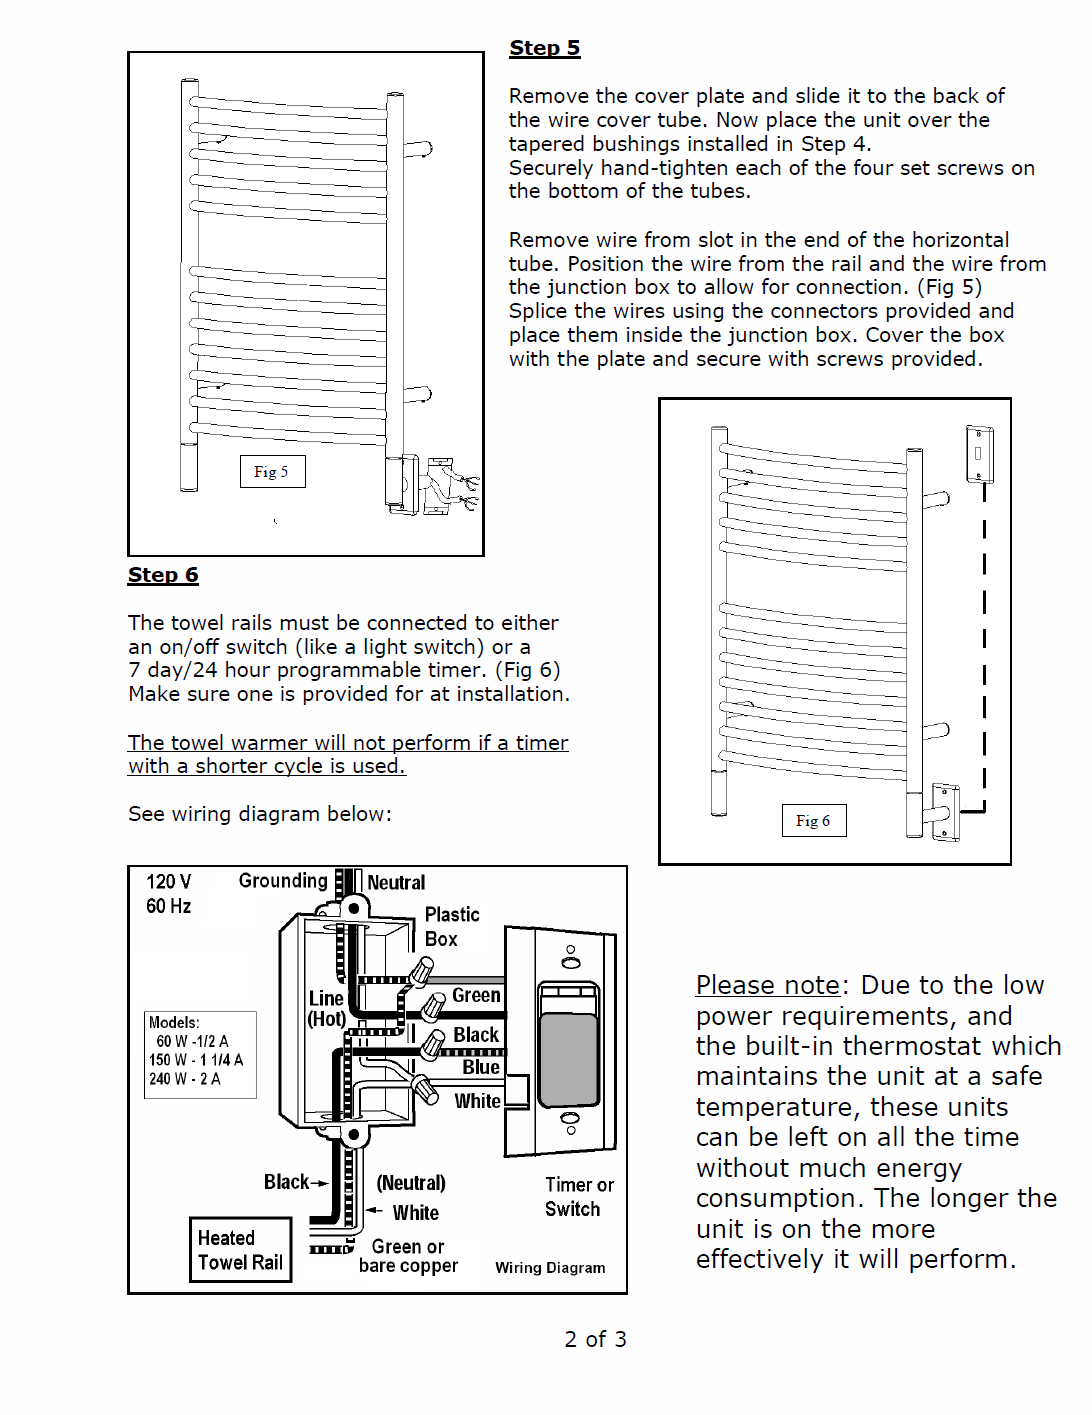 Towe warmer and switch wiring diagram dolgular electrical switch cabinets wiring diagram and engine diagram asfbconference2016 Choice Image